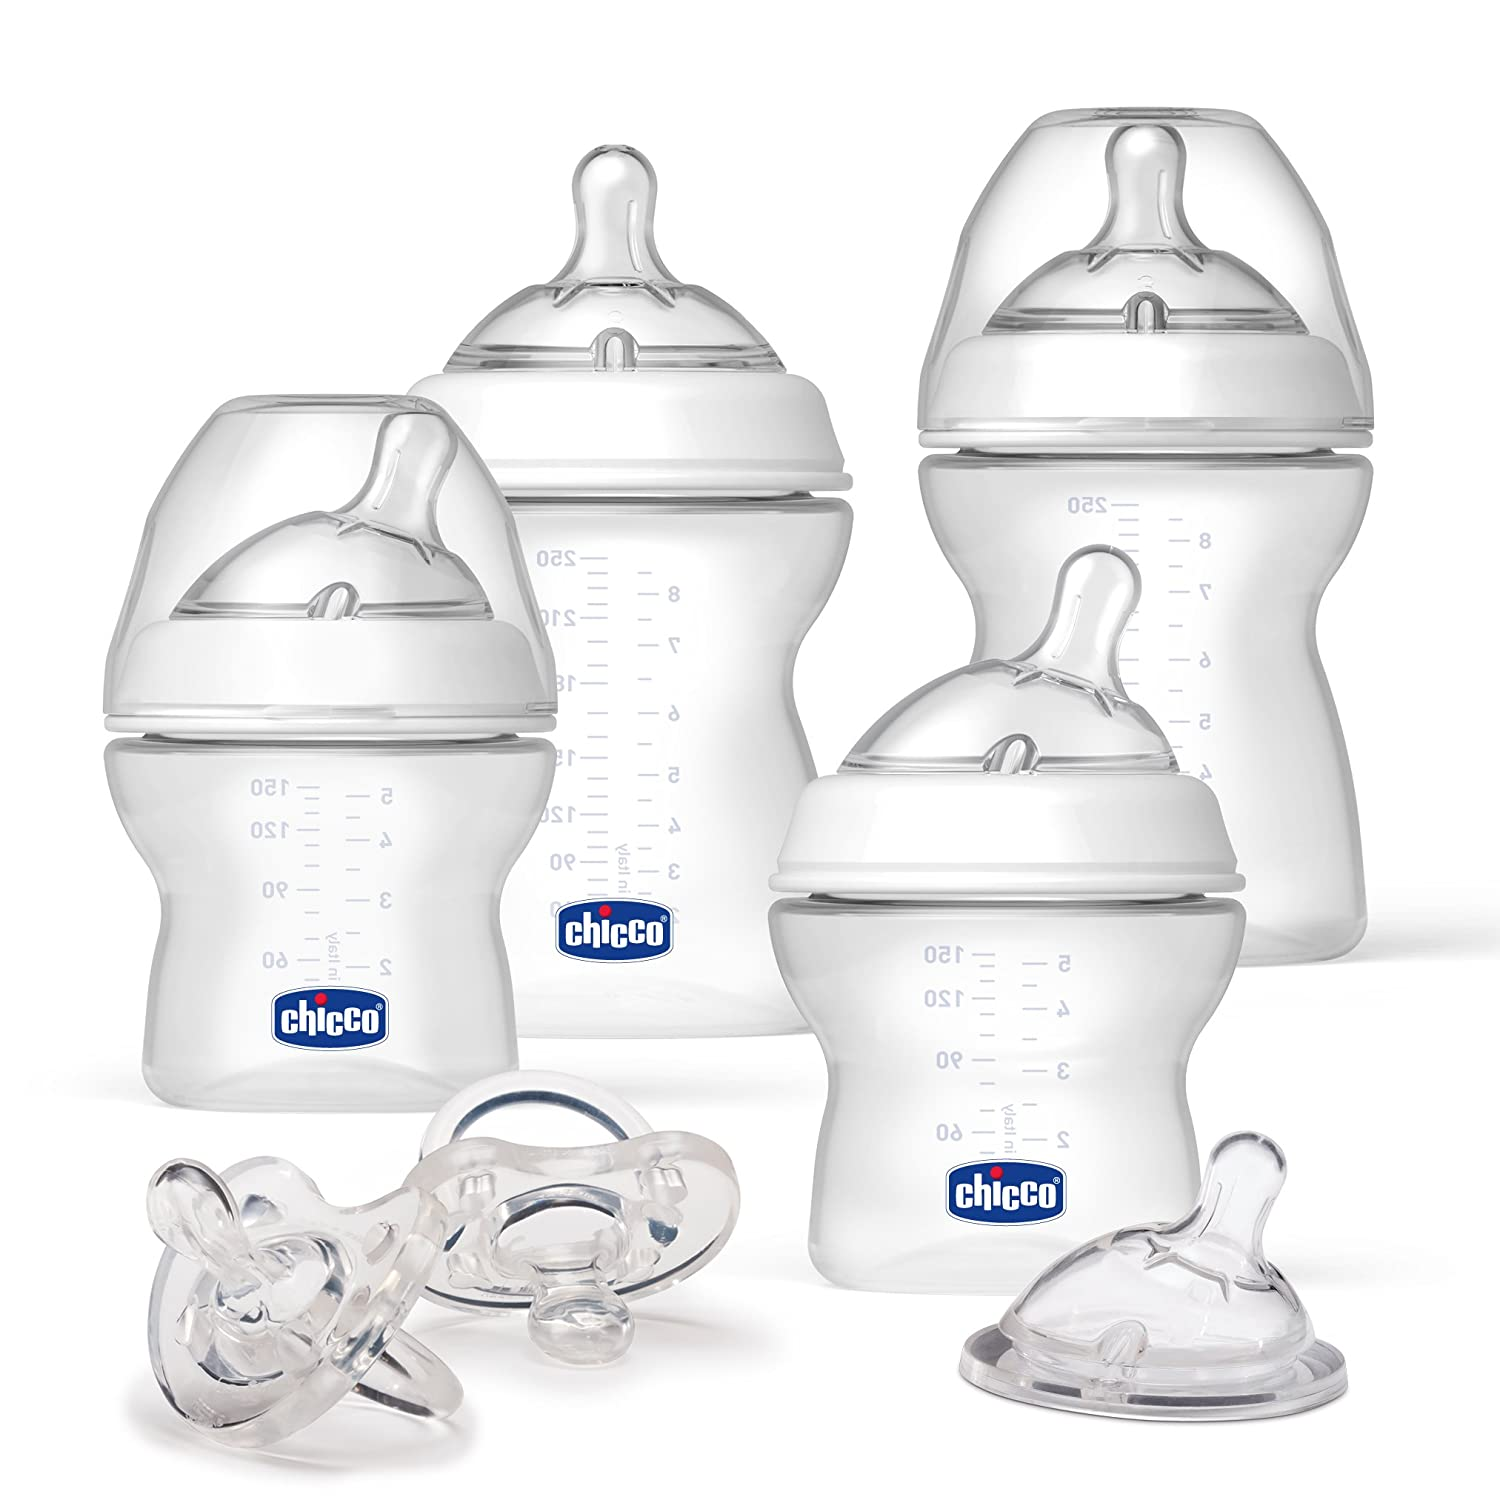 Chicco 8074160 NaturalFit Gift Set-Baby's First Gift Set, White 00080741600070